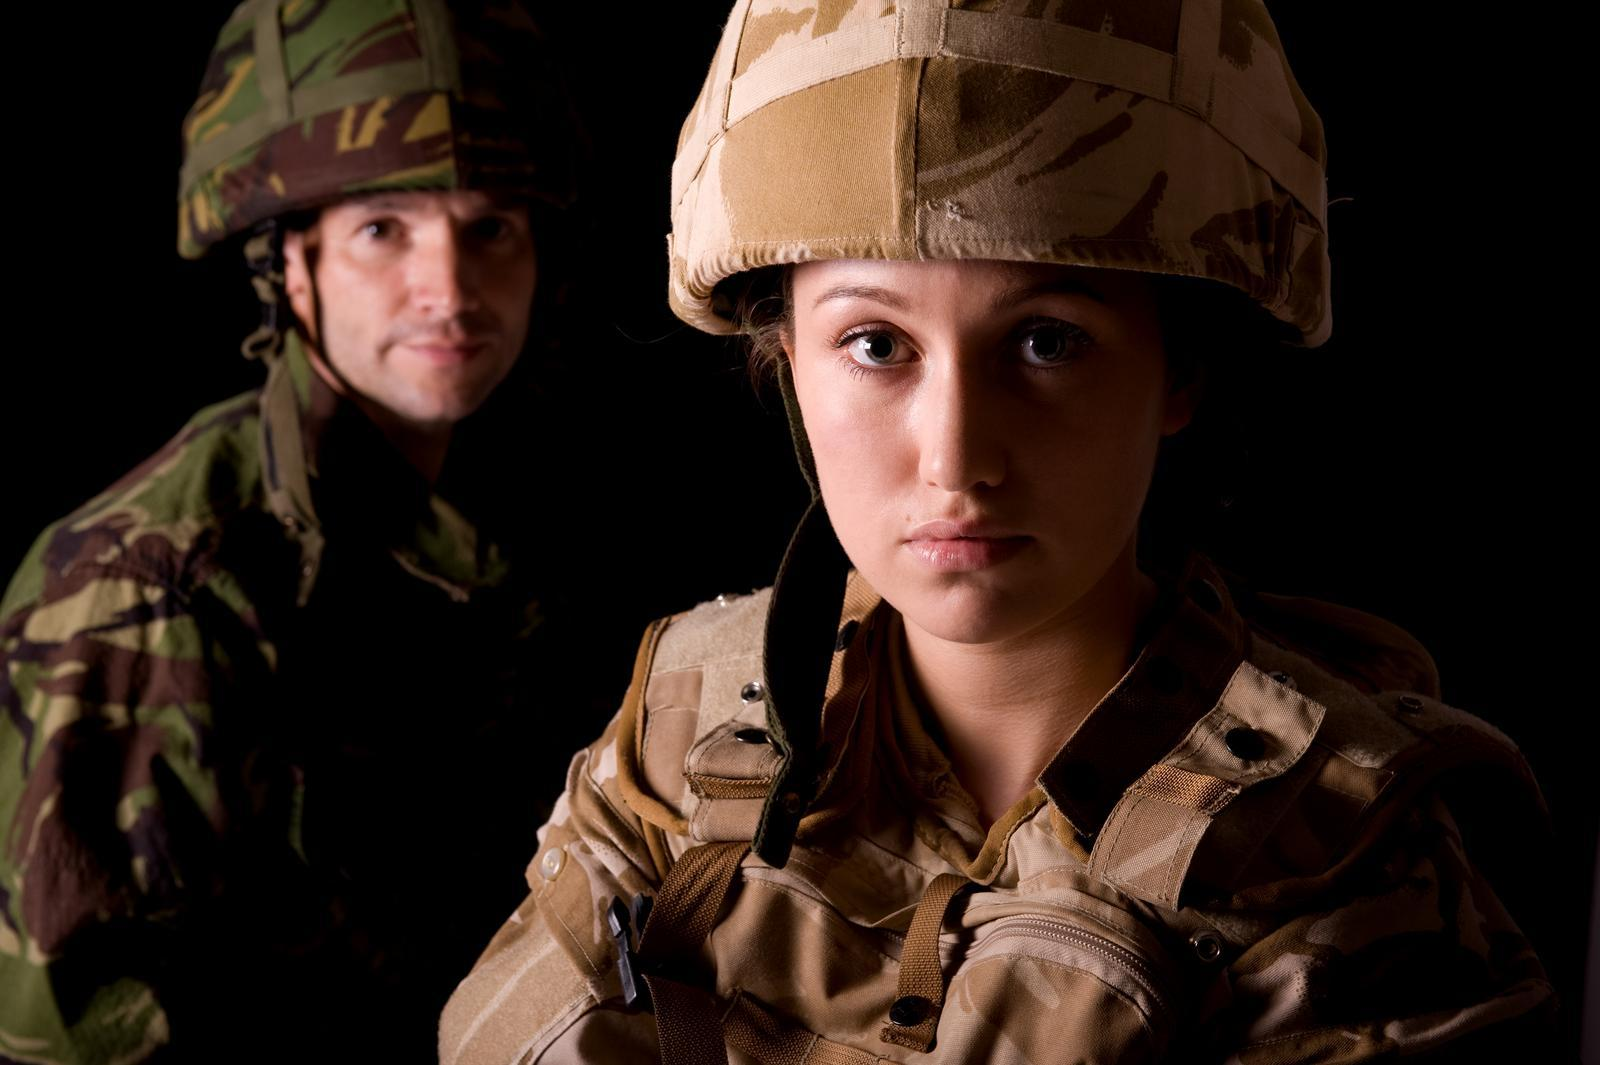 what is post traumatic stress disorder Post-traumatic stress disorder (ptsd) may develop after a terrifying ordeal involving physical harm or the threat of physical harm you don't have to be physically hurt to get ptsd.